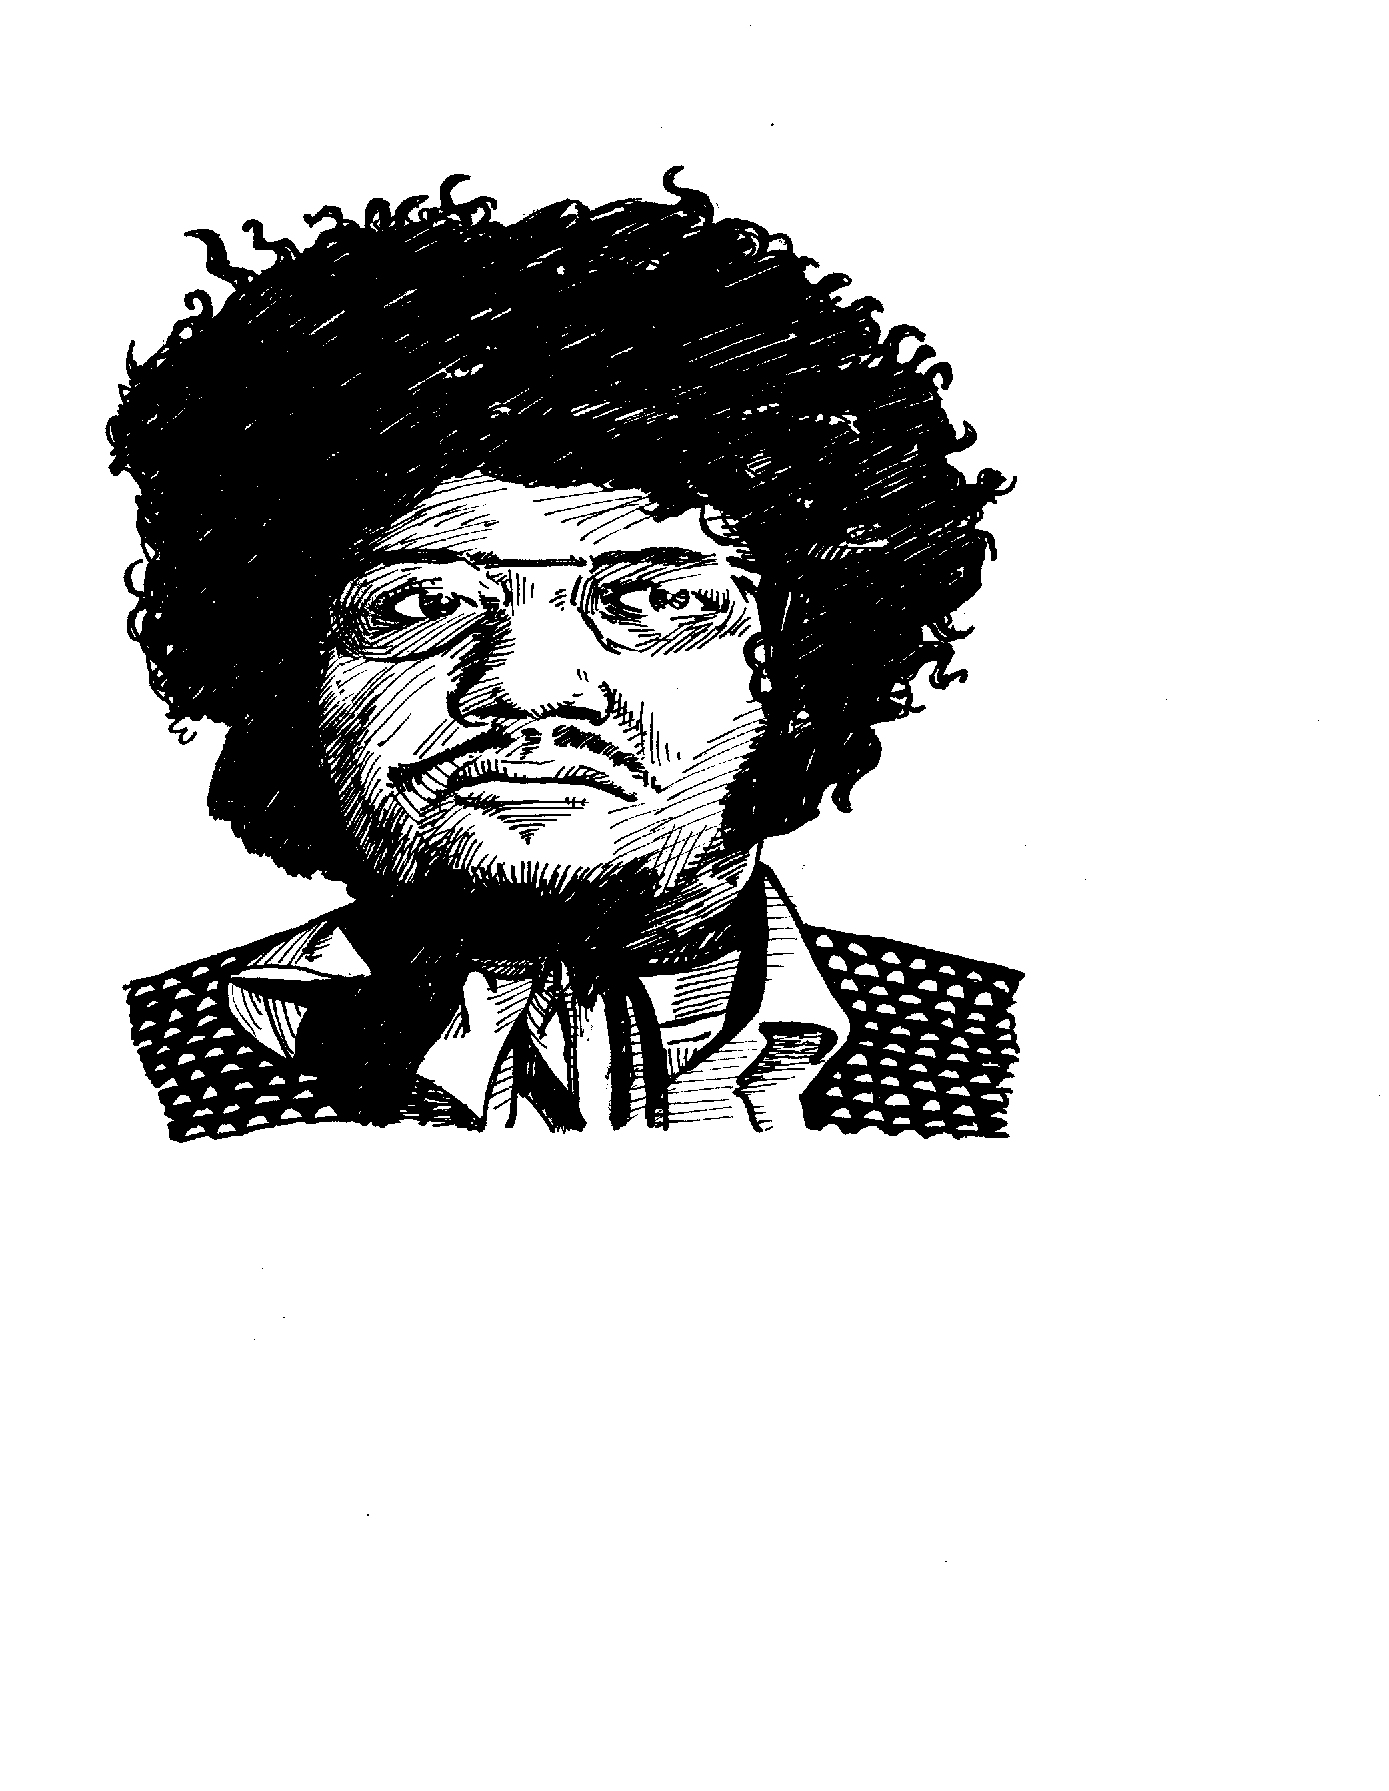 $175 (smaller drawing), Baby Huey from Secret History of Chicago Music